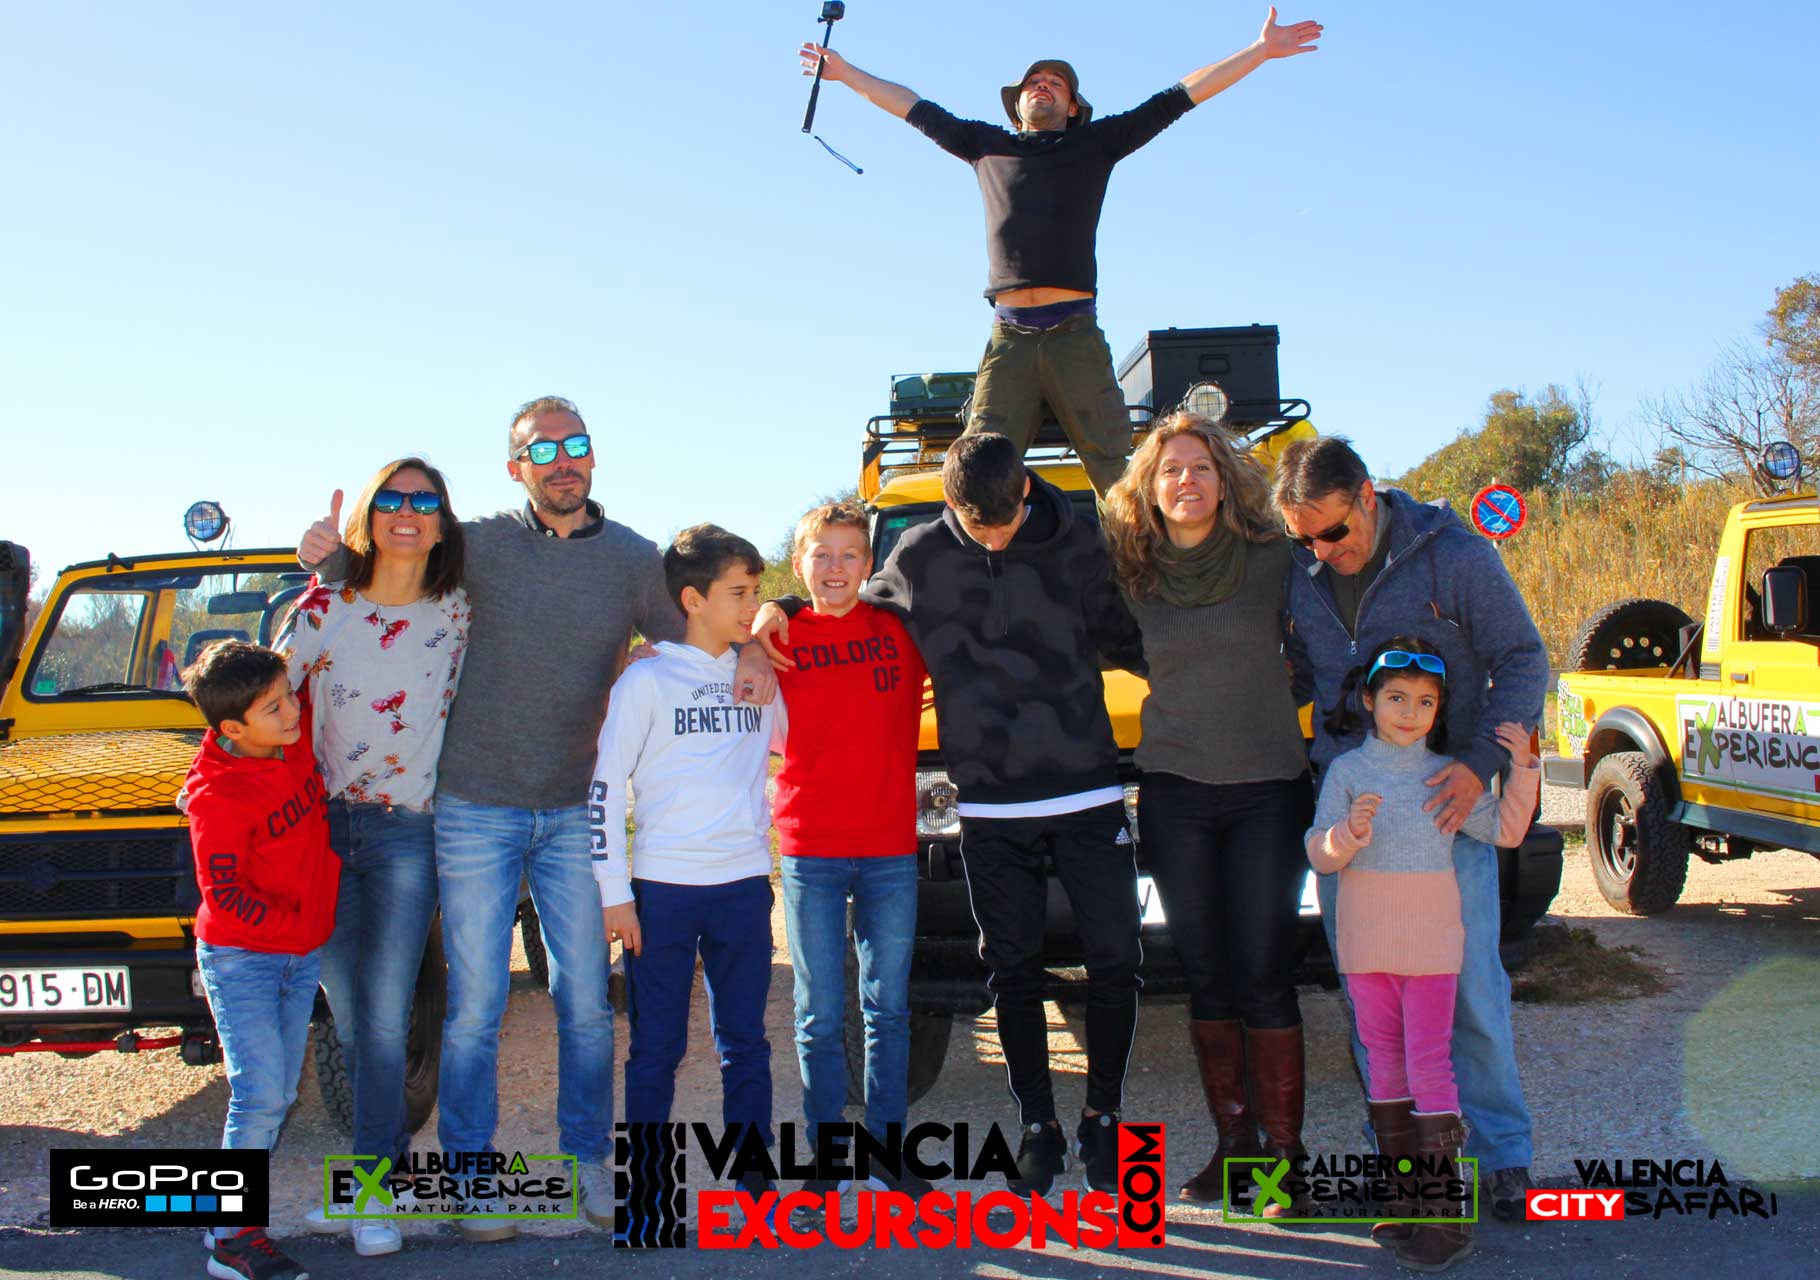 Excursions in Albufera Natural Park for children and families in Valencia. Visit L'Albufera Reserve with jeeps and enjoy a boat trip included